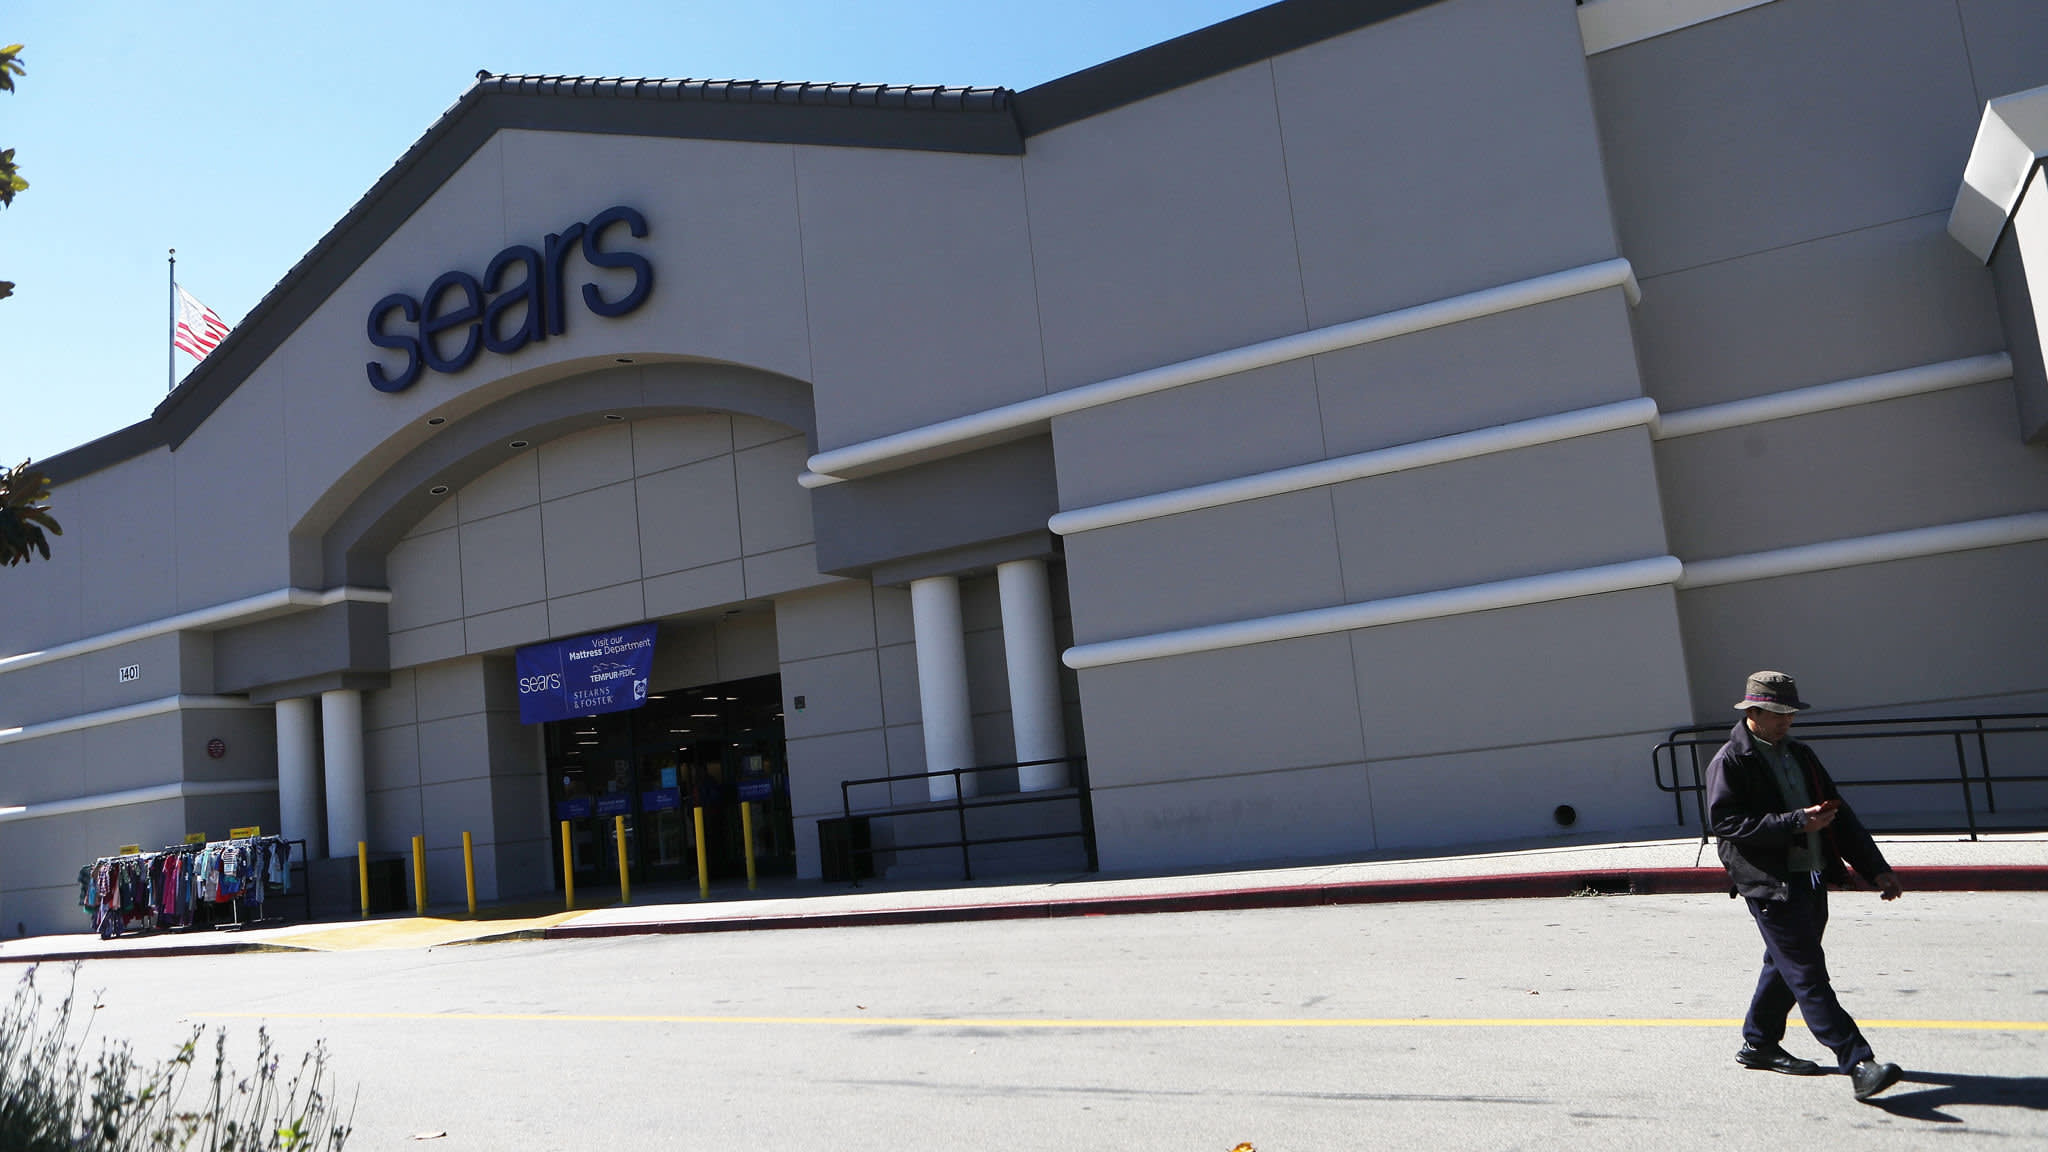 Landlords grapple with Sears bankruptcy | Financial Times